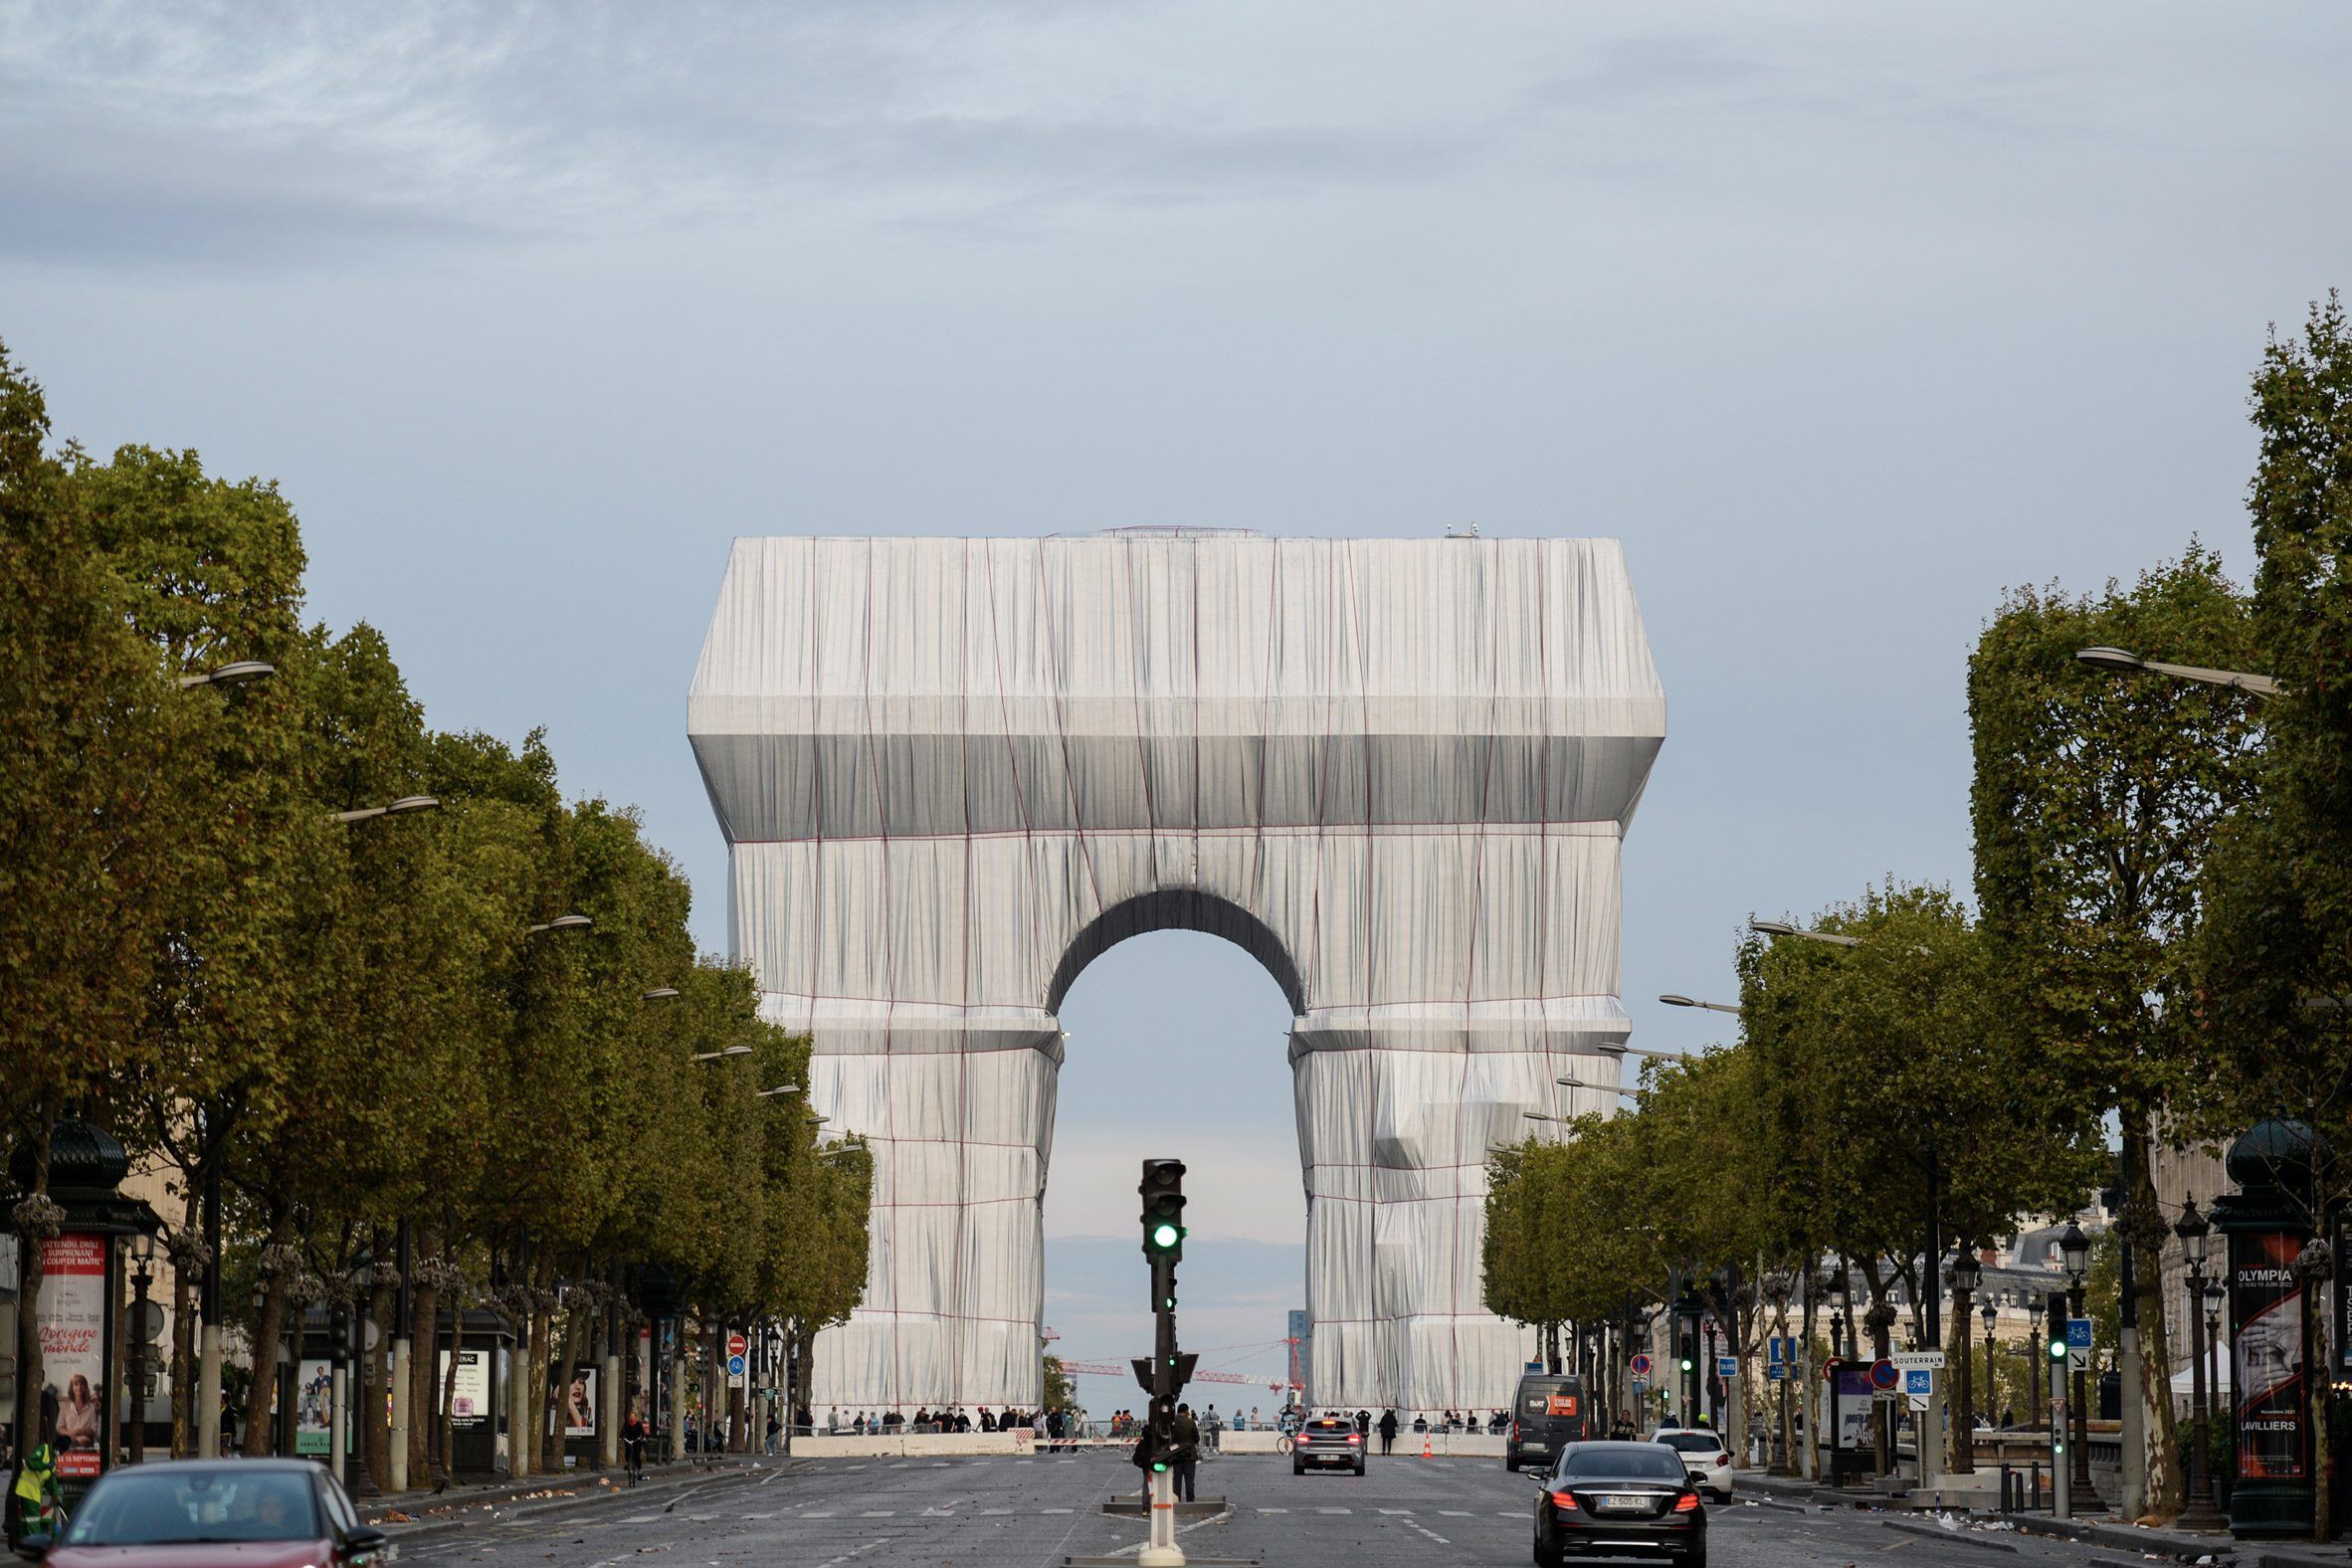 The Arc de Triomphe covered in fabric